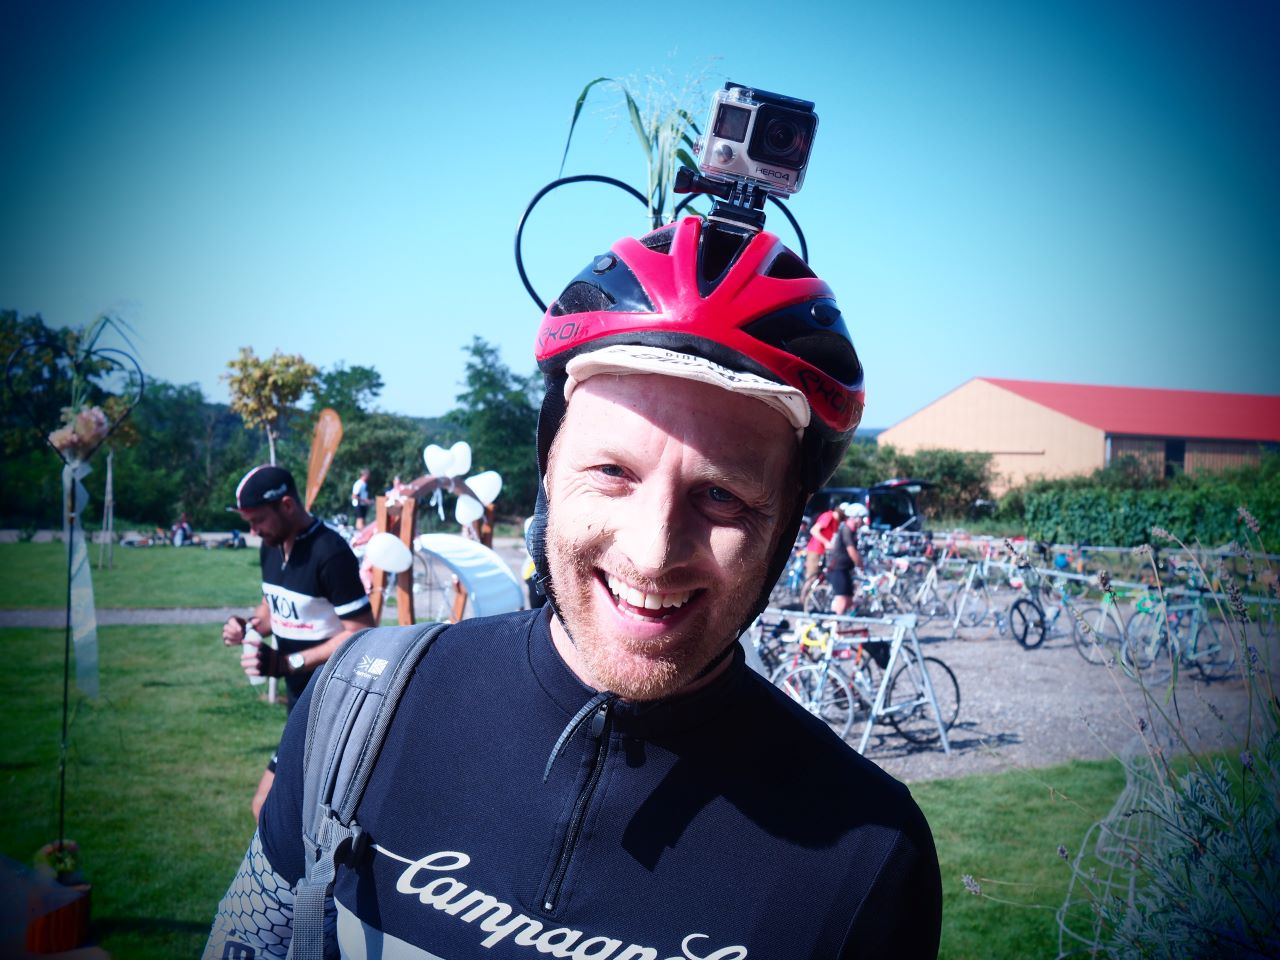 The cycling journalist